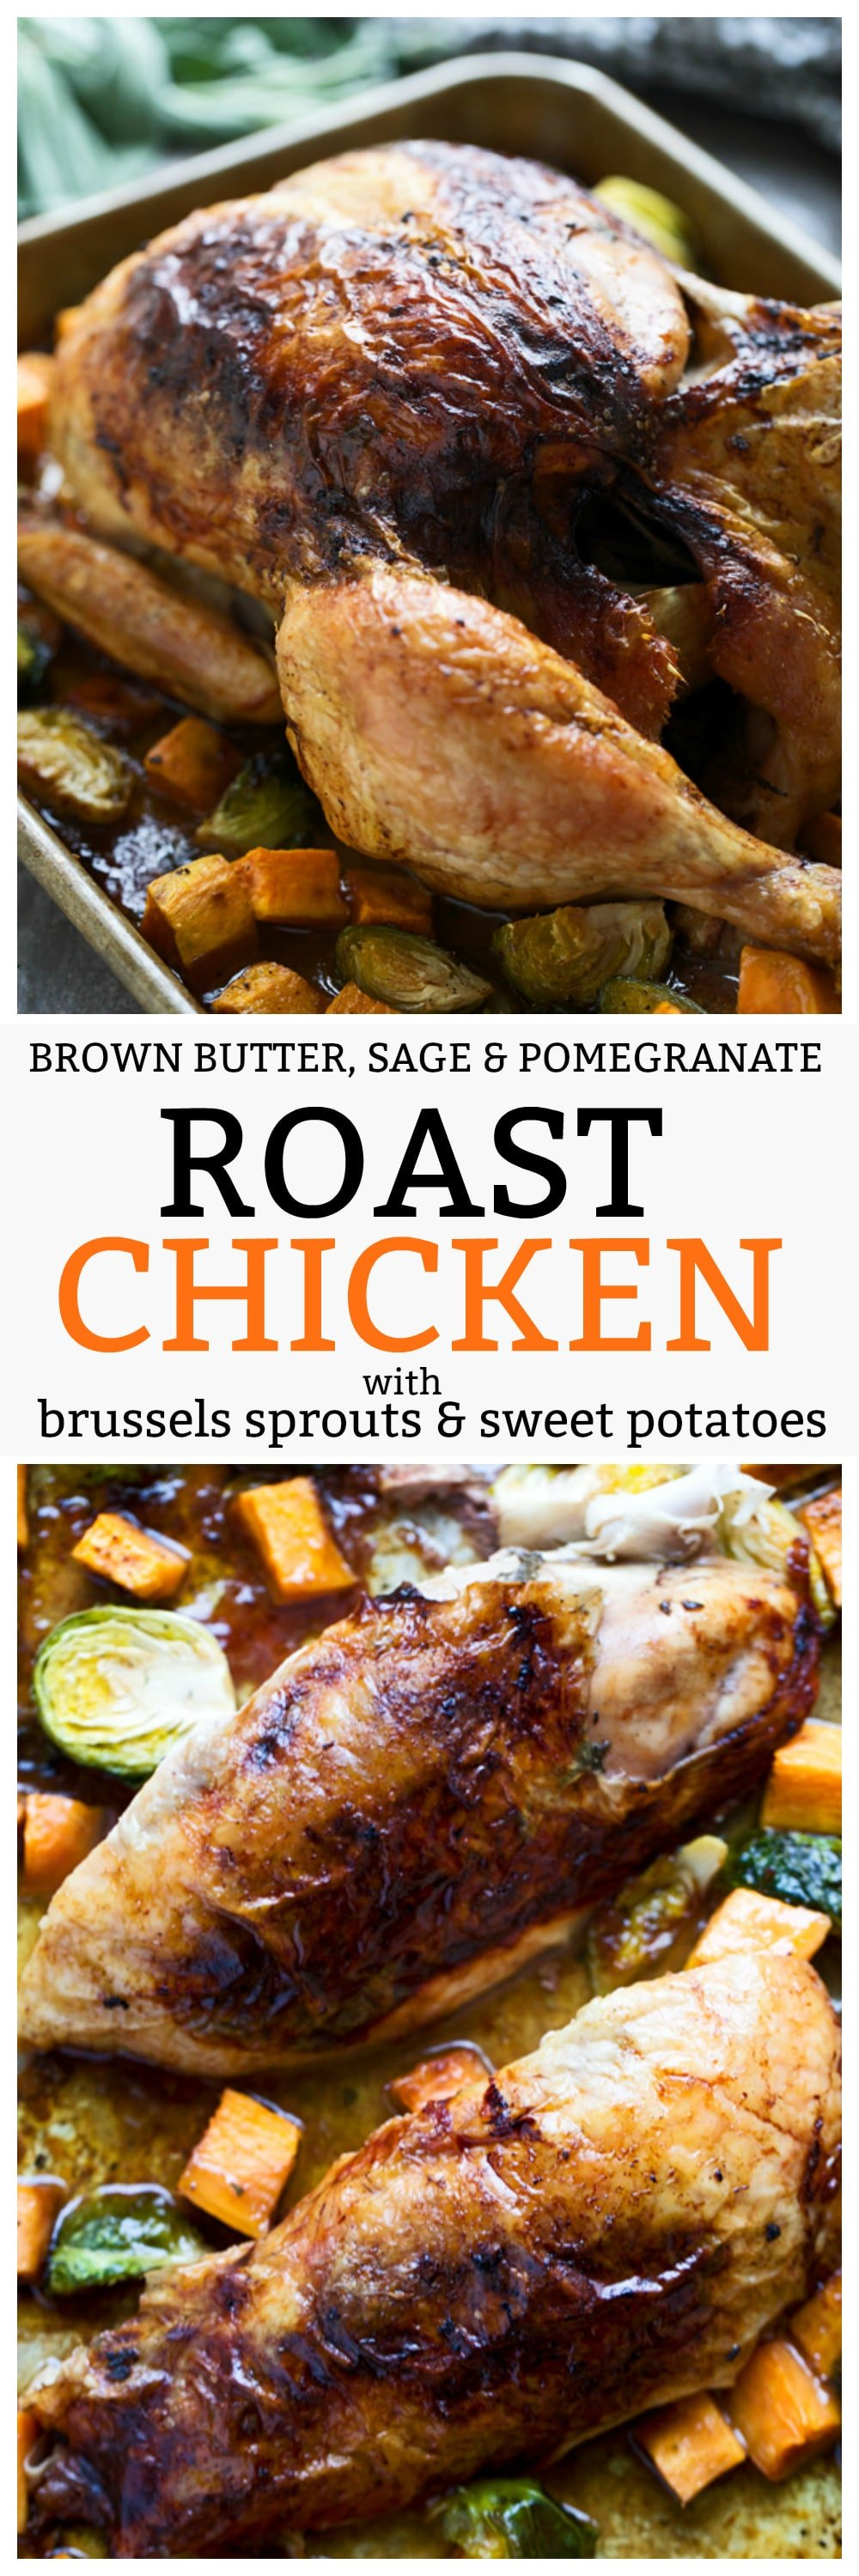 Brown Butter, Sage & Pomegranate Roast Chicken with Sweet Potatoes and Brussels Sprouts